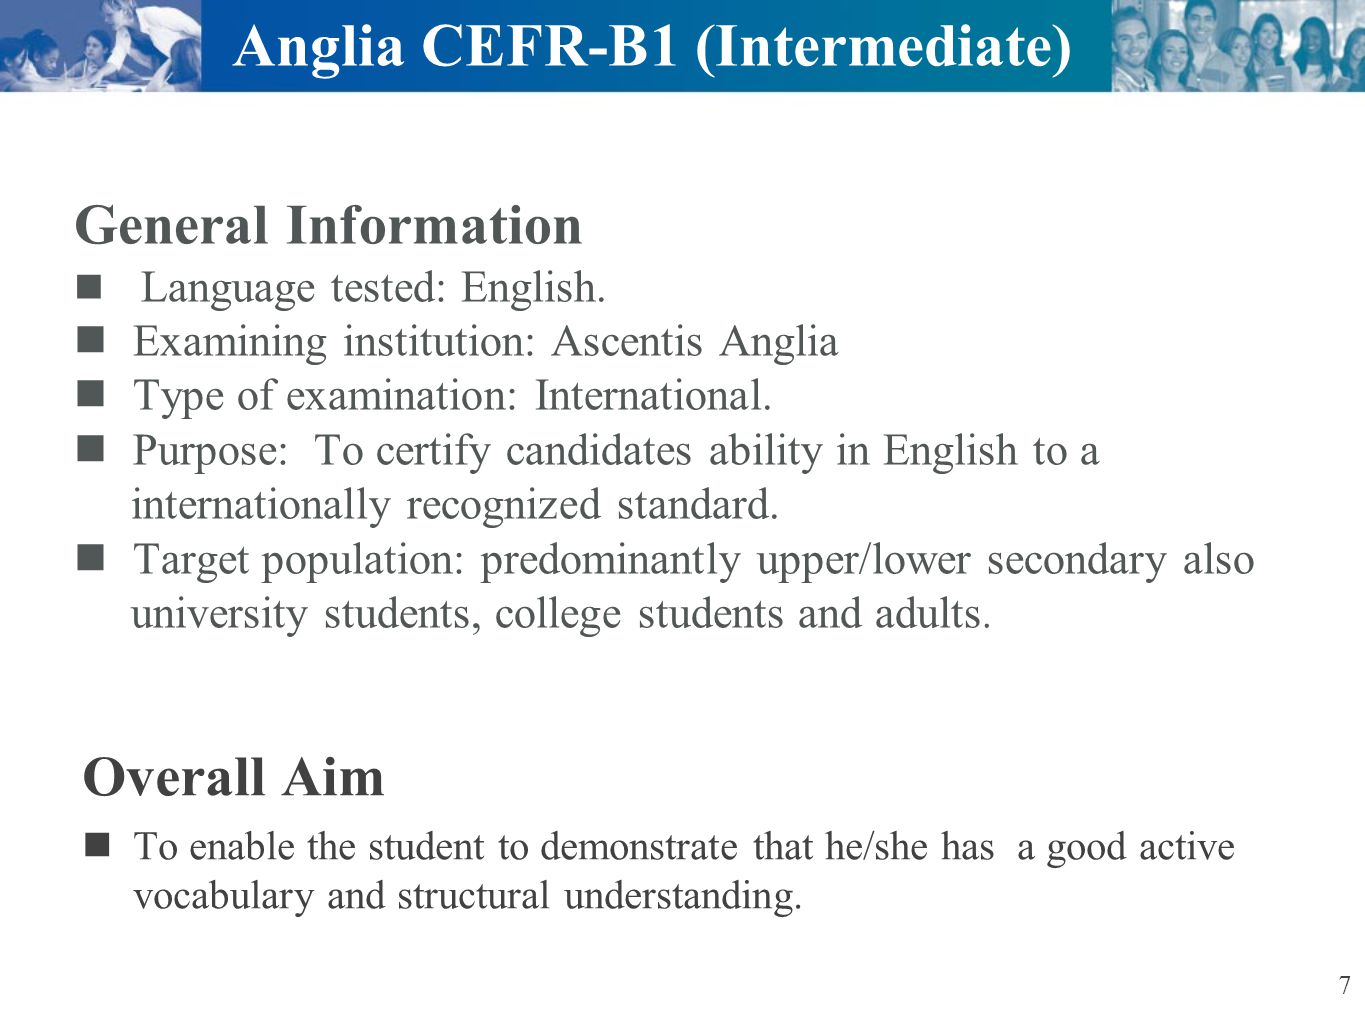 Ascentis Anglia ESOL International Examinations Specific objectives At this level the student can successfully: Write clear connected text on descriptive, narrative or imaginary topics Read and understand texts from both concrete or abstract topics Distinguish between and use a variety of tenses: past, present and future Ask and answer questions about past or present or future events 8 Anglia CEFR-B1 (Intermediate)